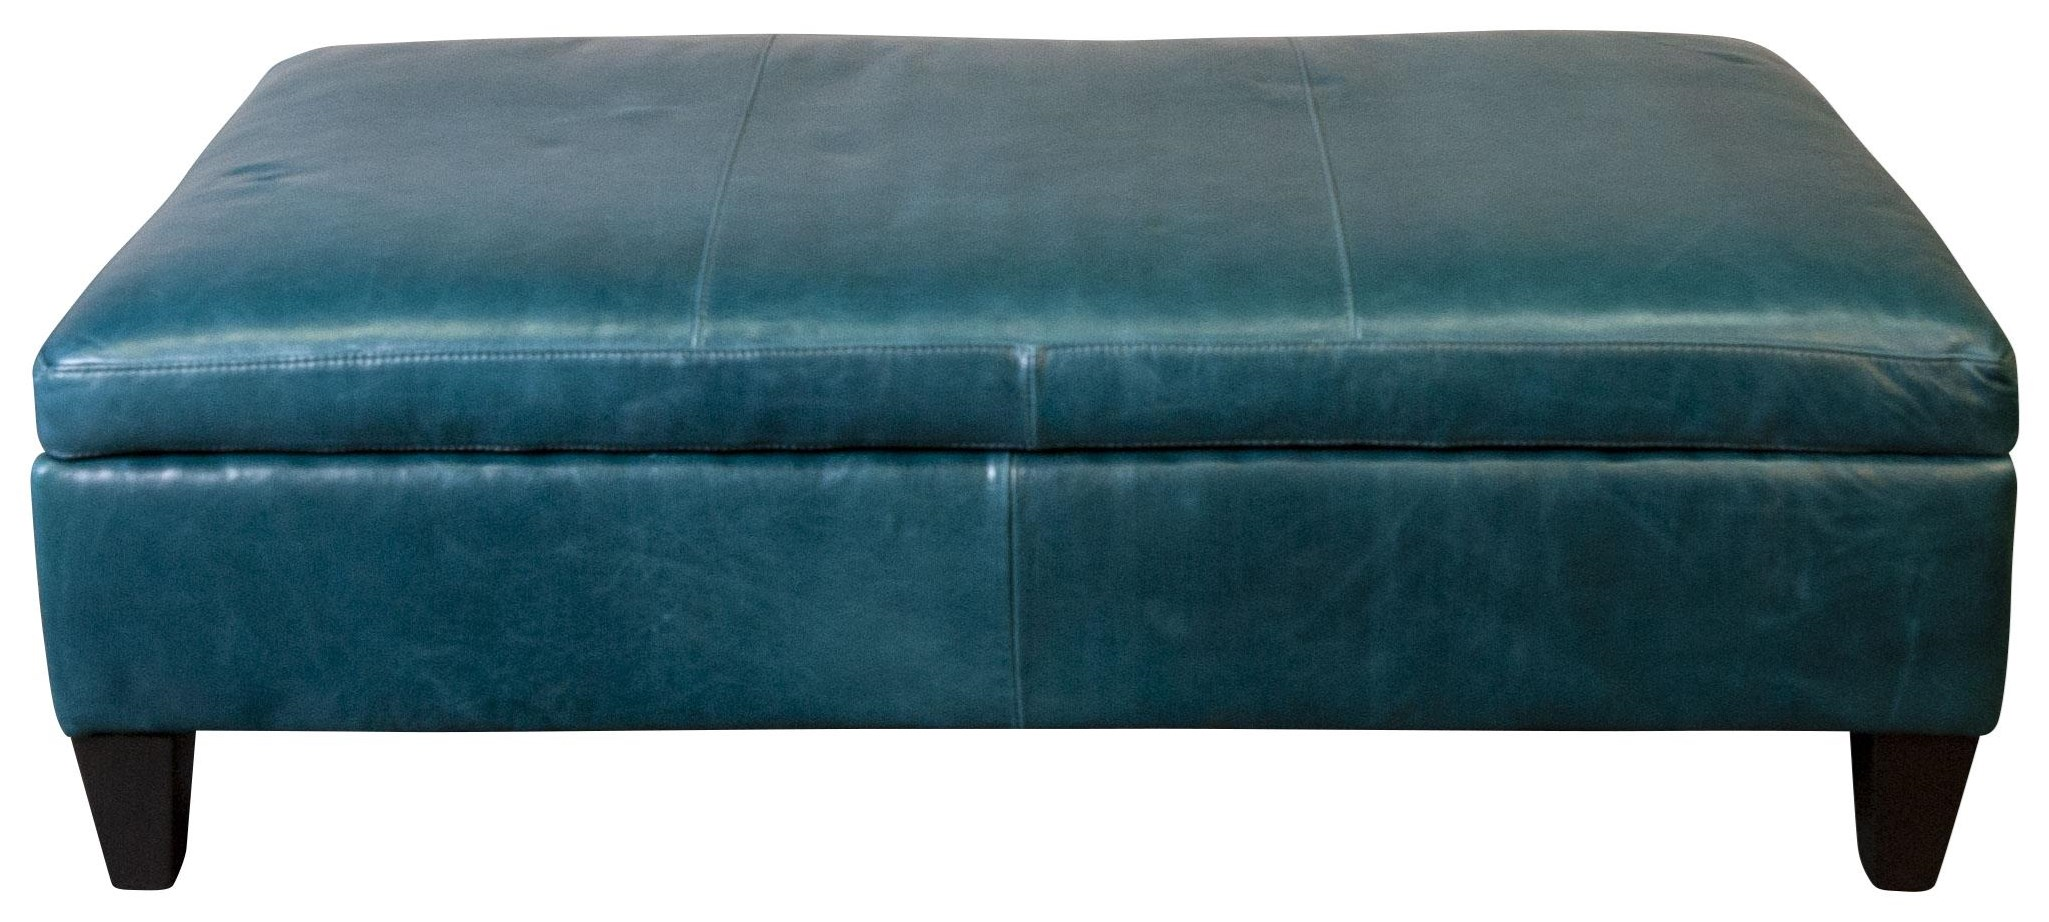 Malbec Malbec Leather Storage Ottoman by Jonathan Louis at Morris Home